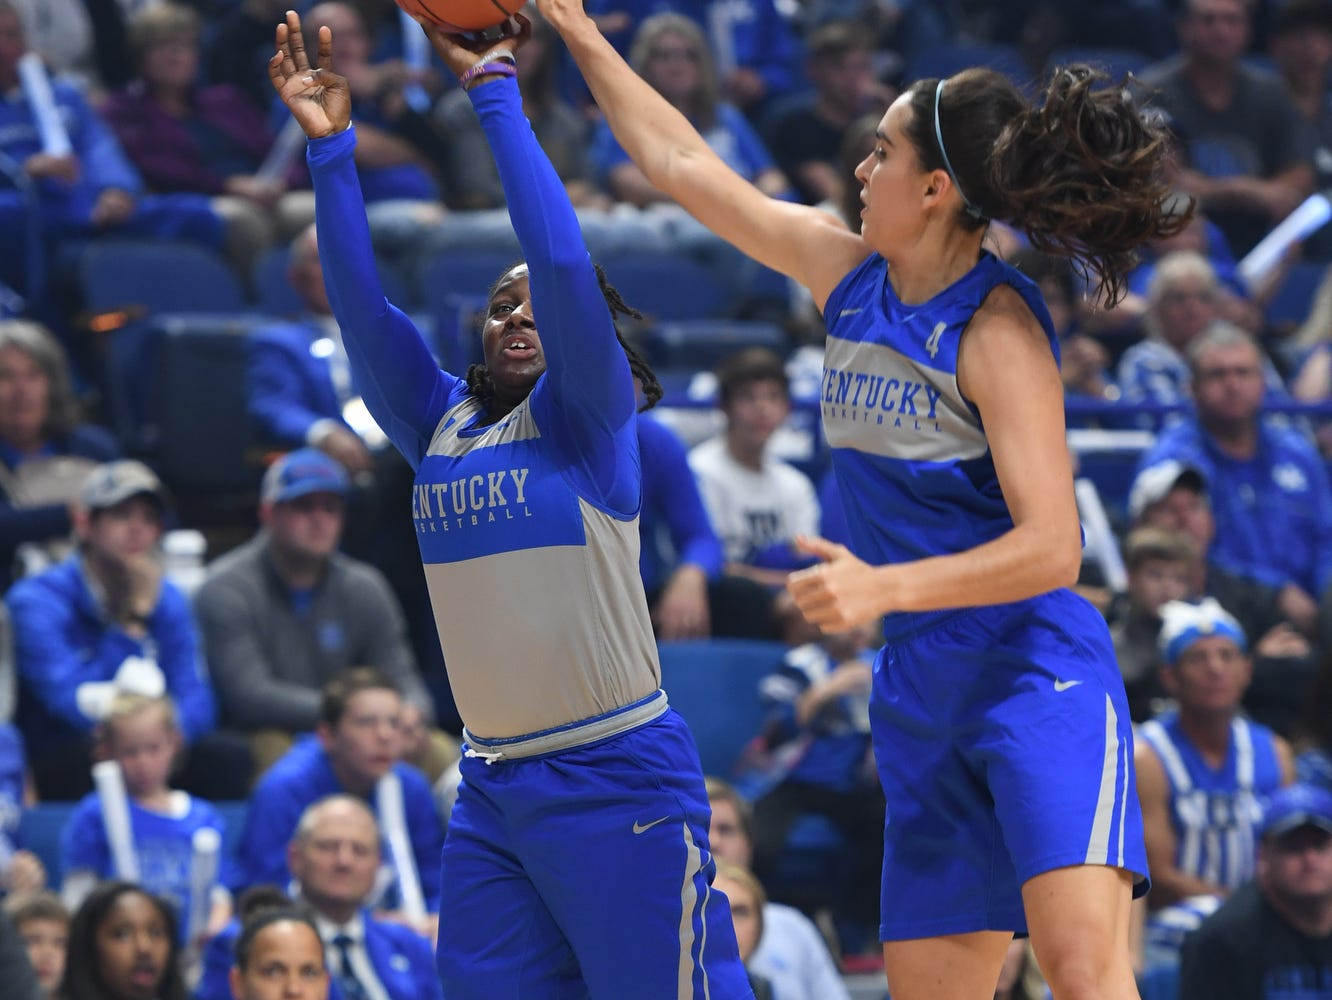 Senior Maci Morris gets a block during the University of Kentucky basketball's annual Big Blue Madness at Rupp Arena in Lexington, Kentucky on Friday, Oct. 12, 2018.